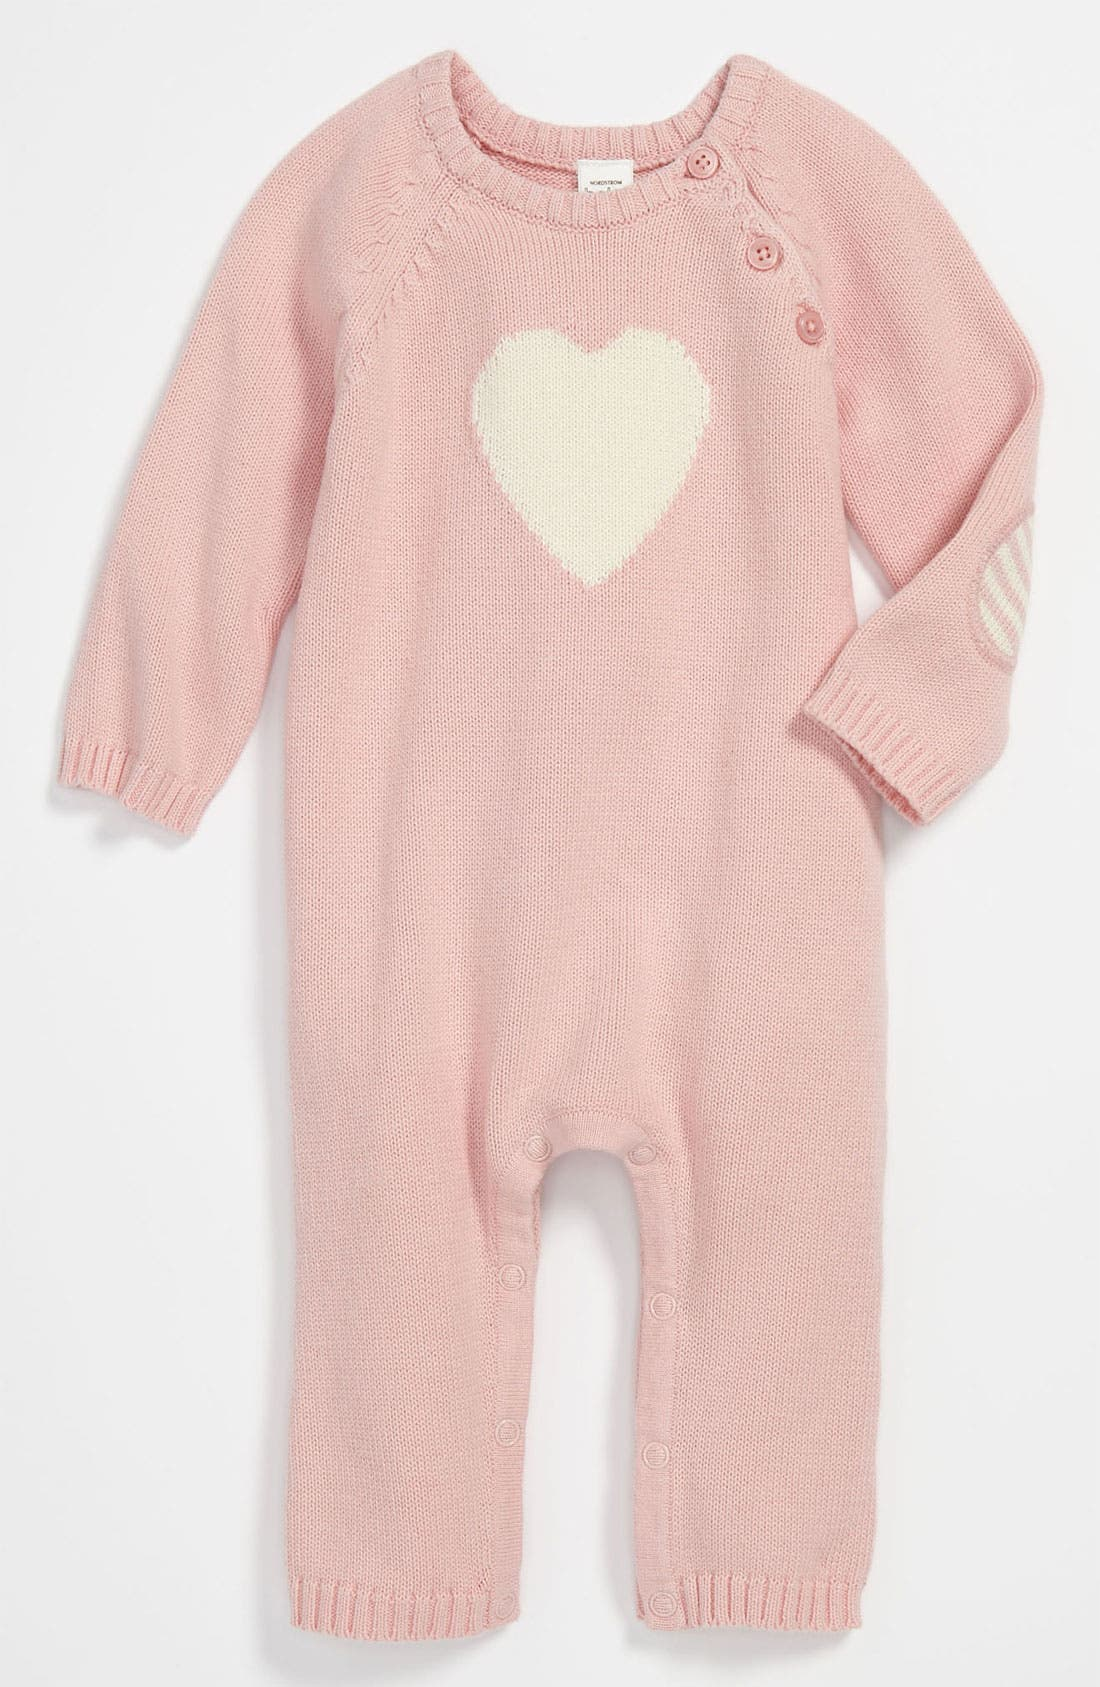 Alternate Image 1 Selected - Nordstrom Baby Sweater Knit Coveralls (Infant)